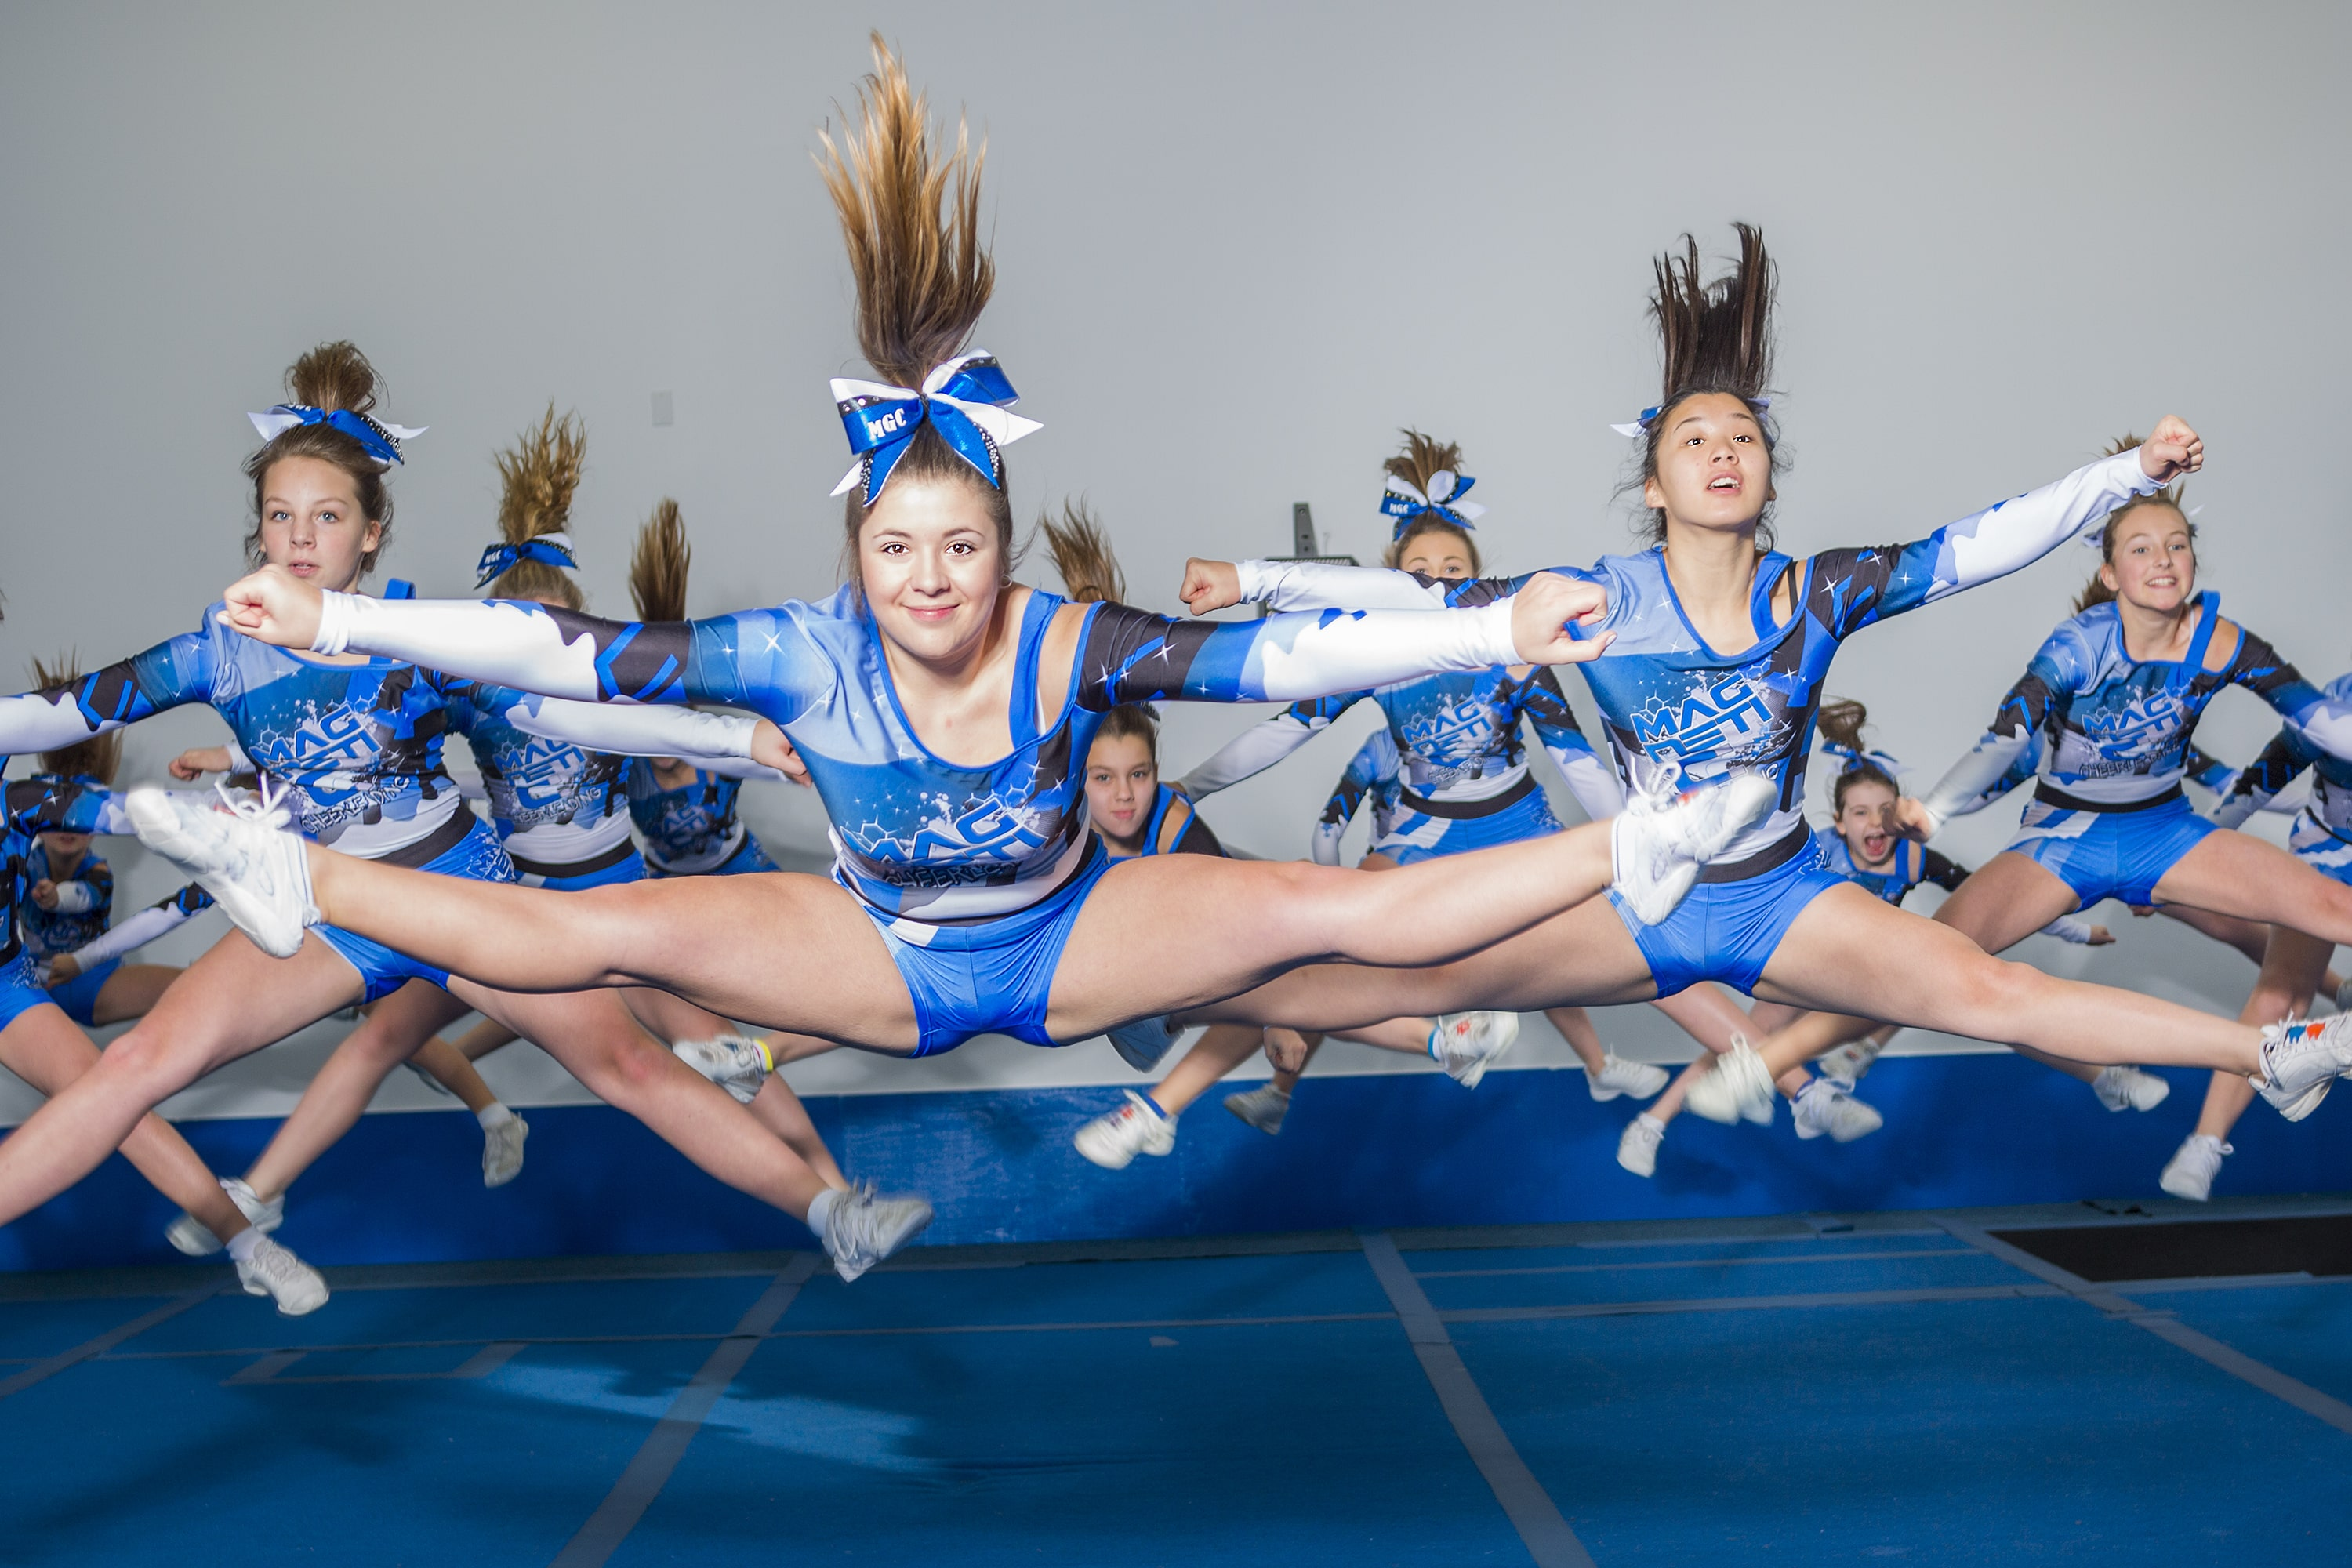 Cheerleading team jumping up into the air